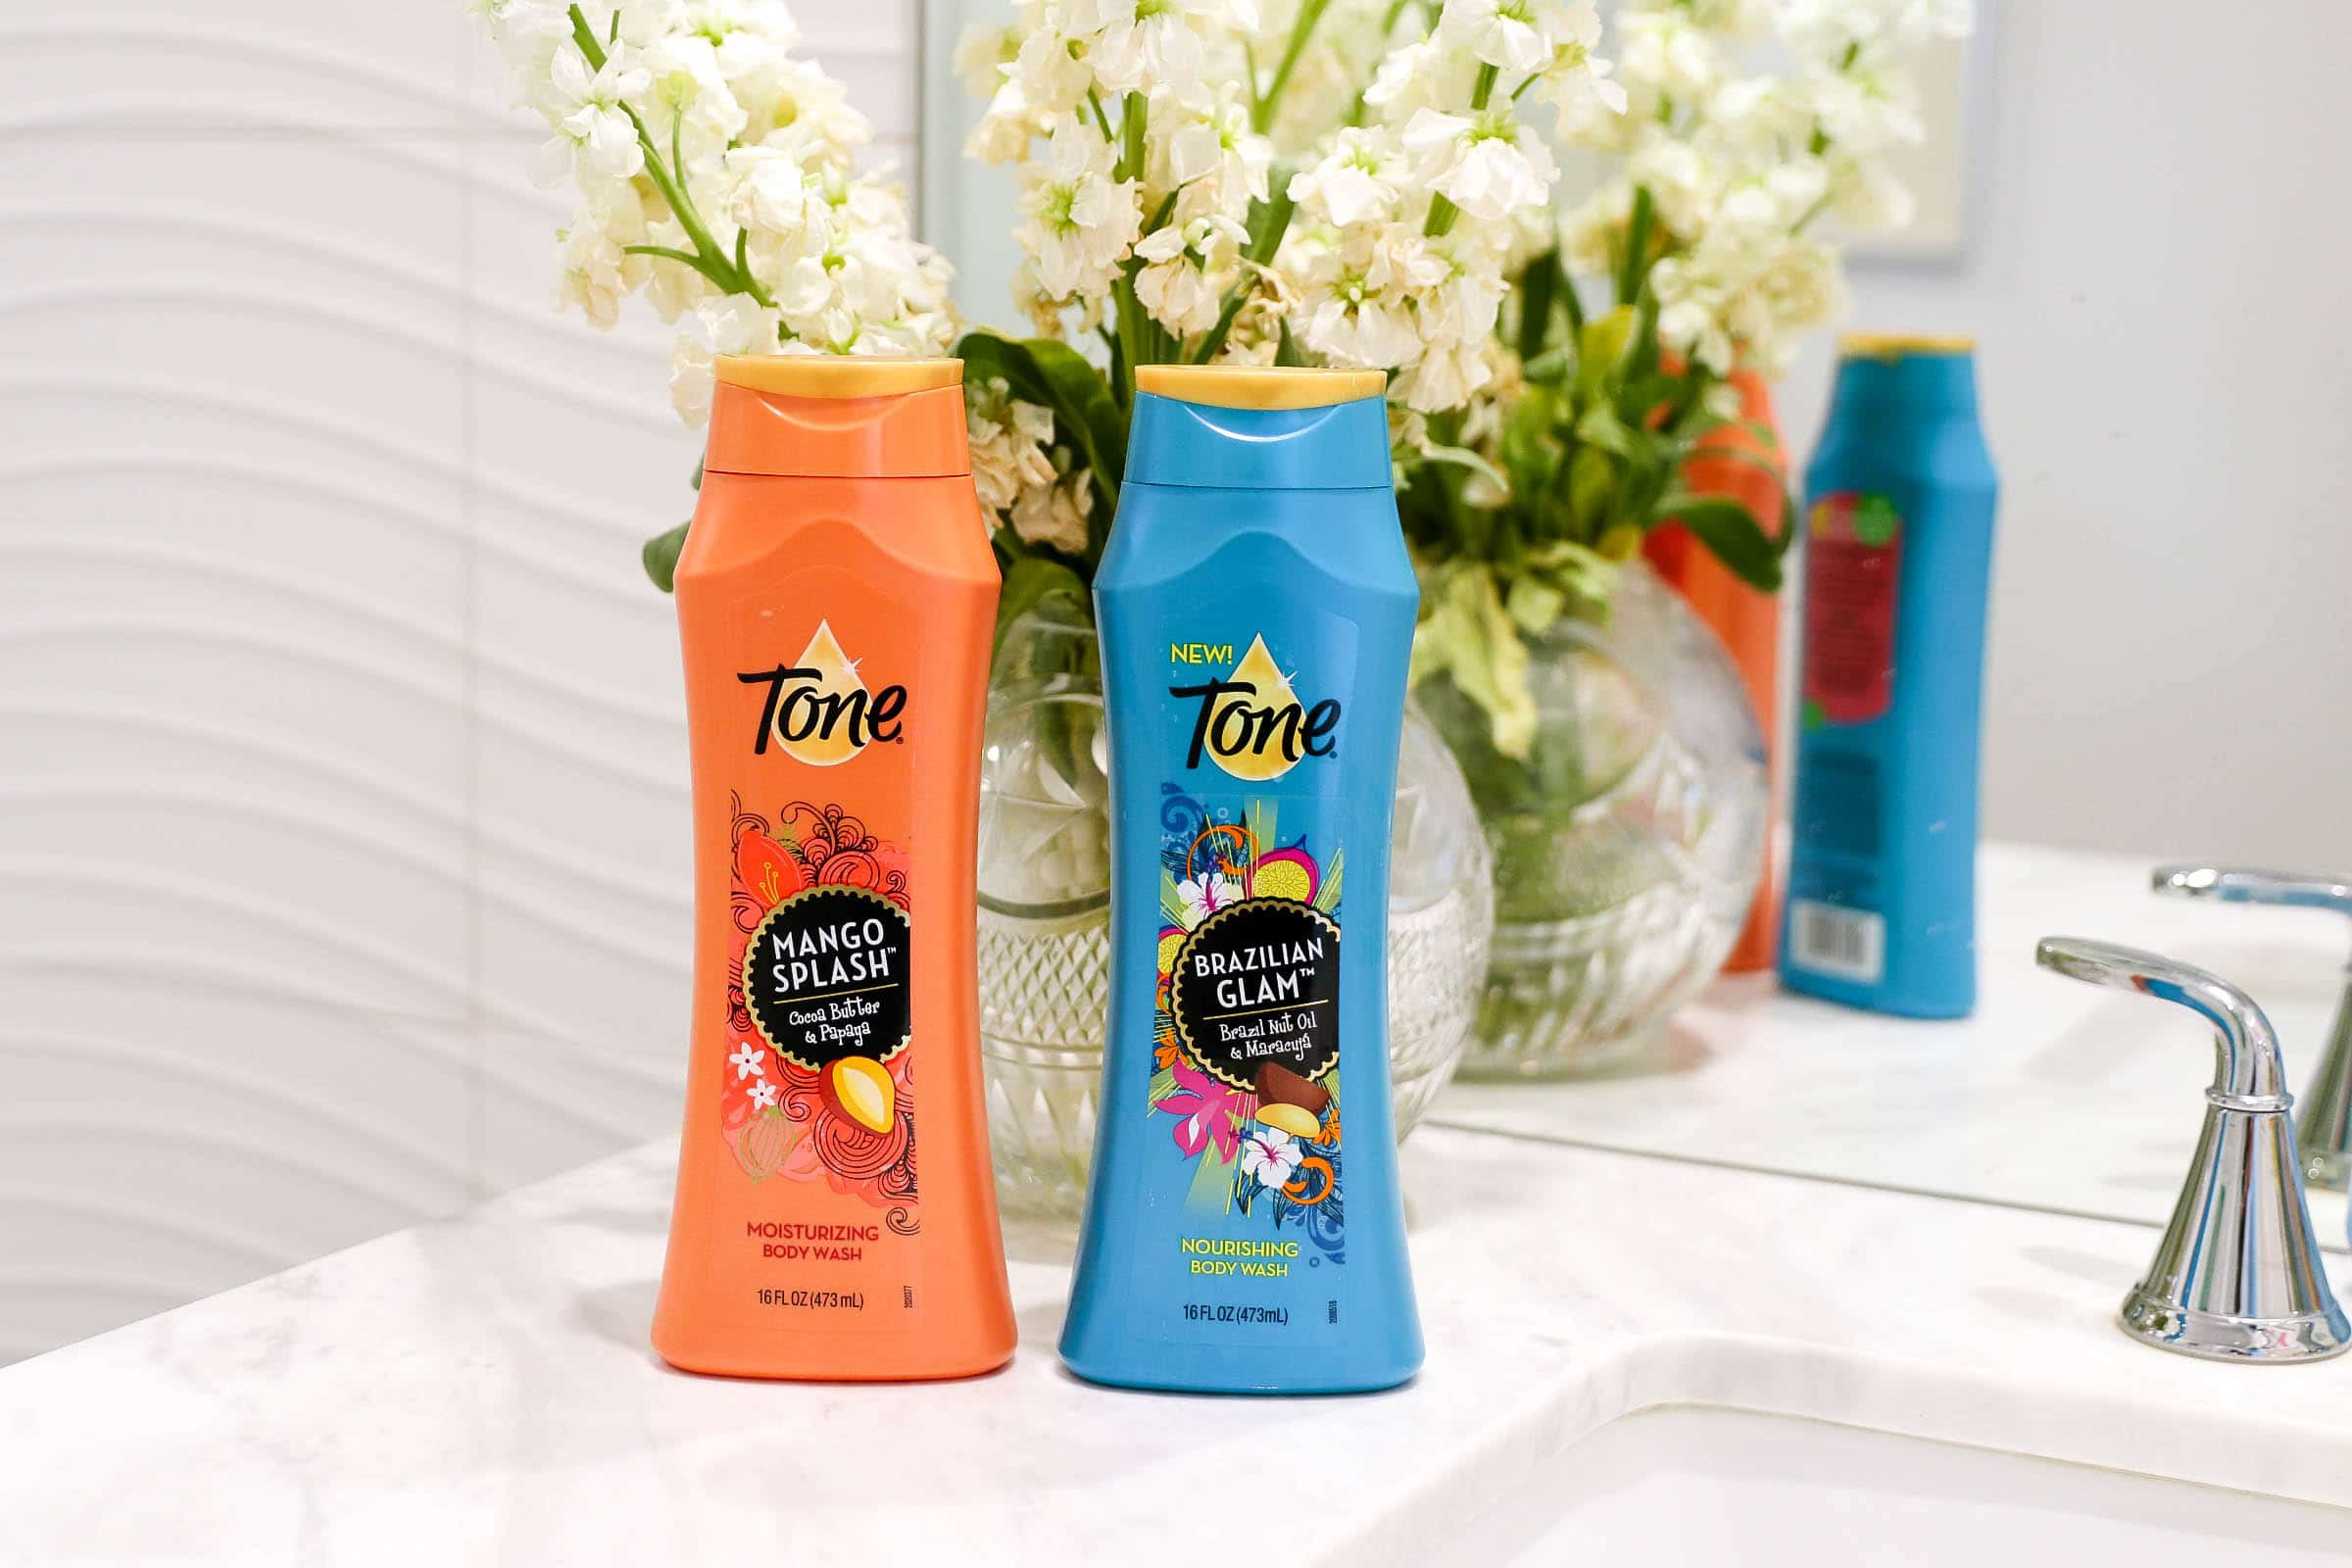 missyonmadison, melissa tierney, missyonmadison instagram, tone up, tone body wash, body wash, walmart, beauty tutorial, beauty buys, home oasis, body wash, skincare, skincare routine, beauty blogger, lifestyle blogger, beauty picks,